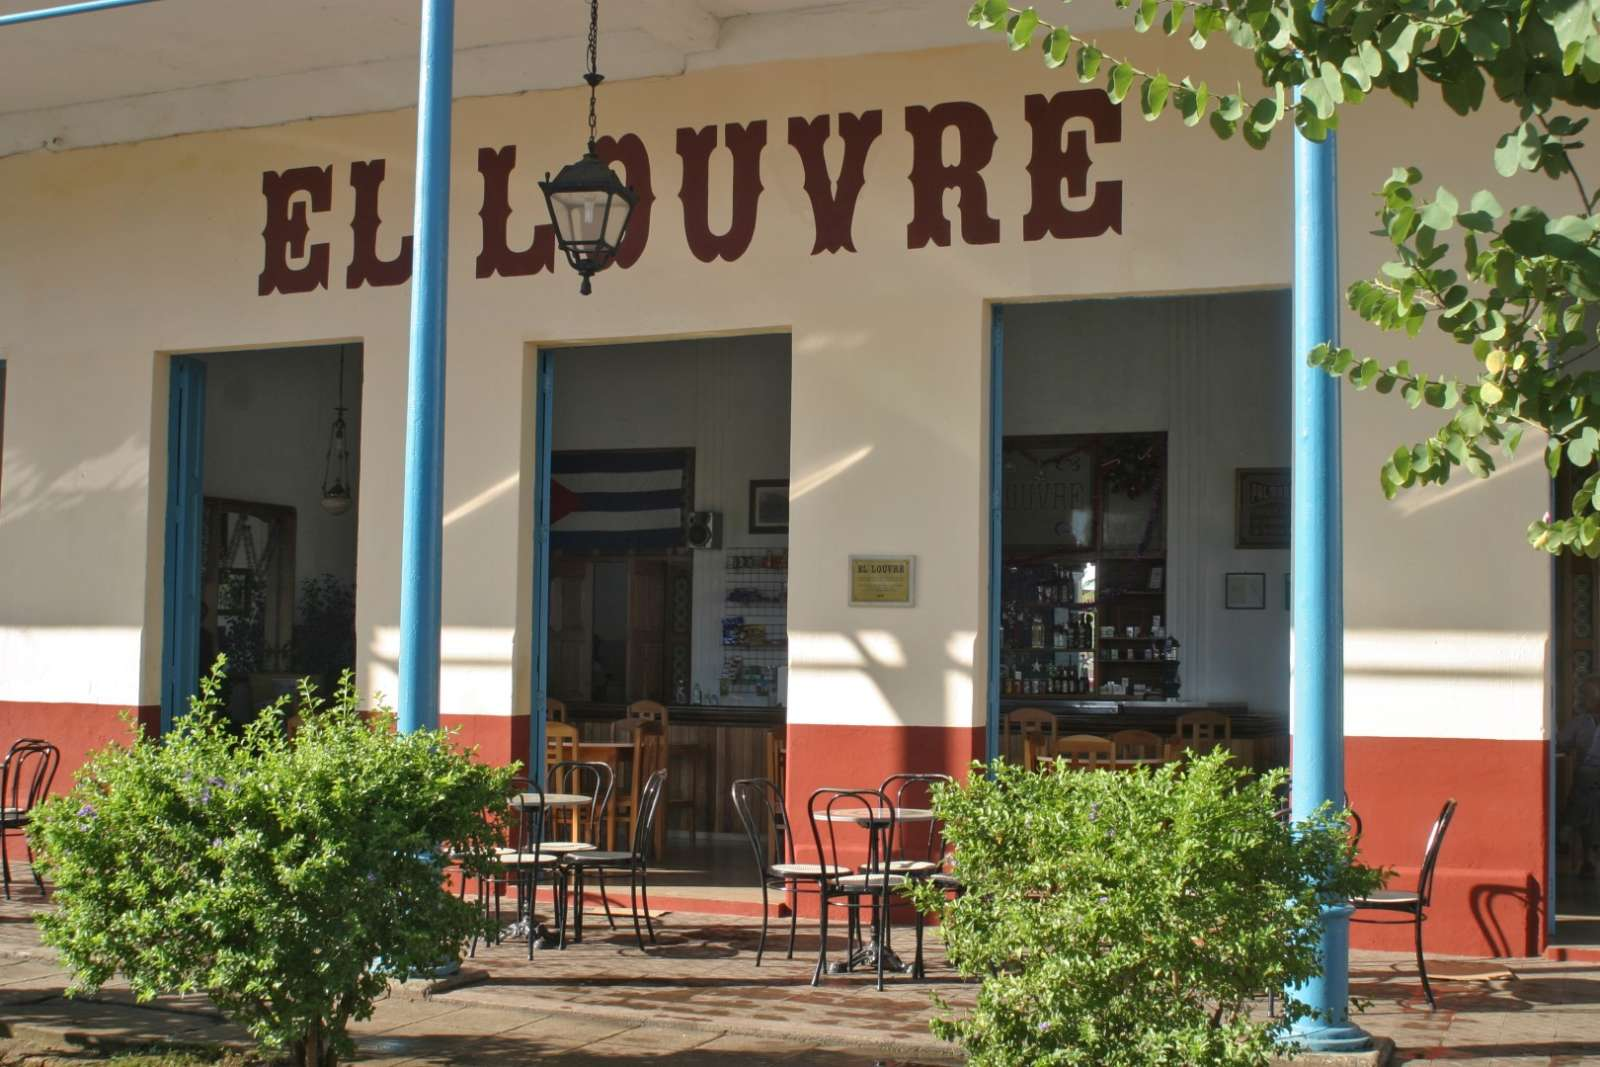 Famous El Louvre bar in Remedios Cuba